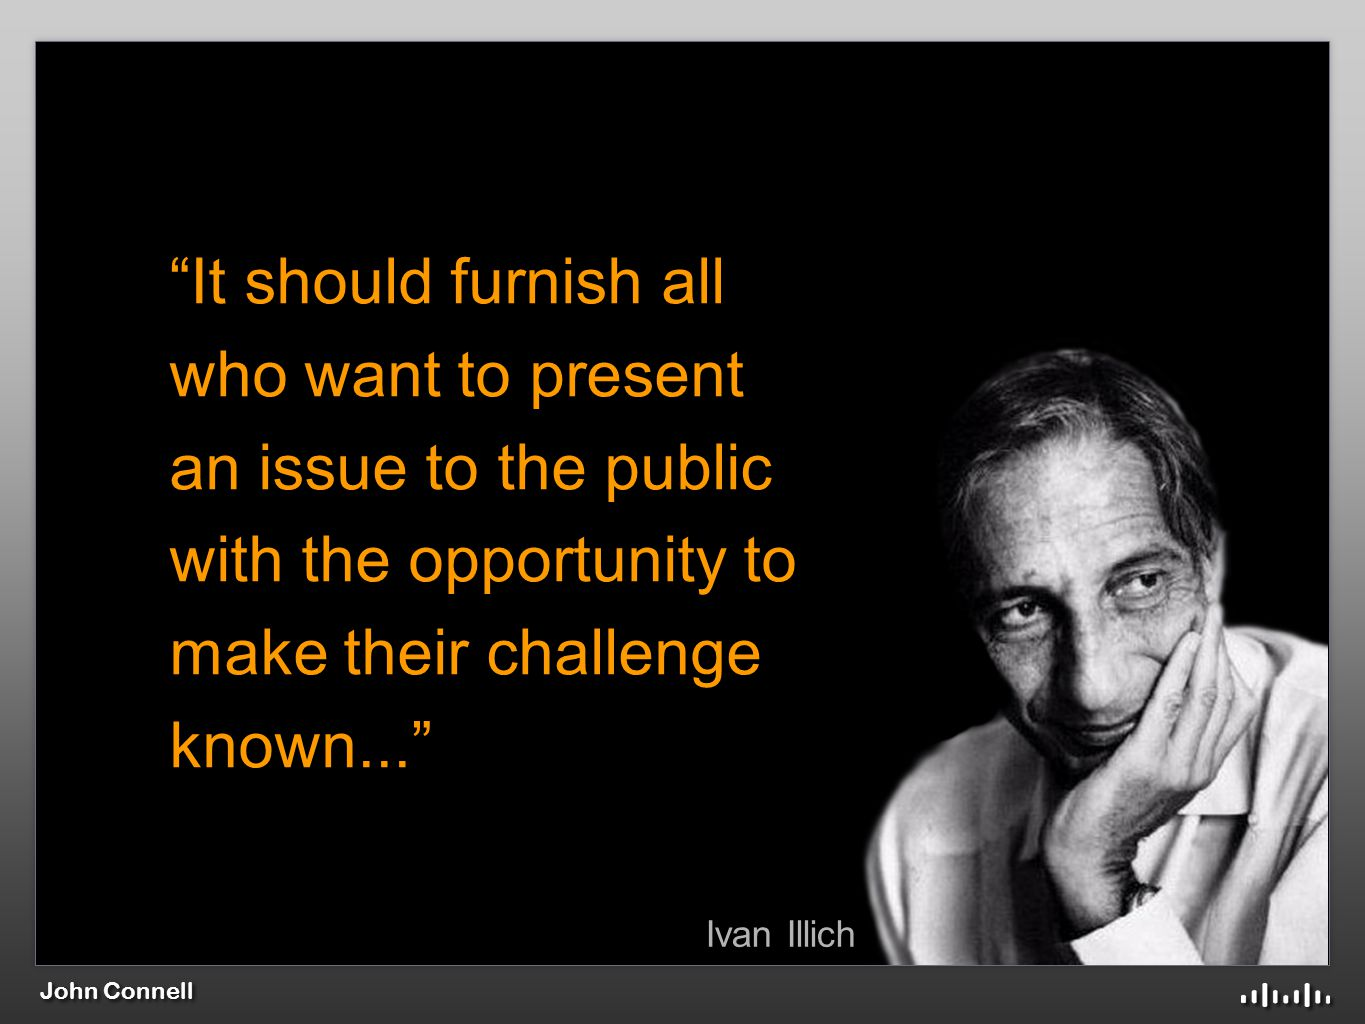 John Connell Ivan Illich It should furnish all who want to present an issue to the public with the opportunity to make their challenge known...